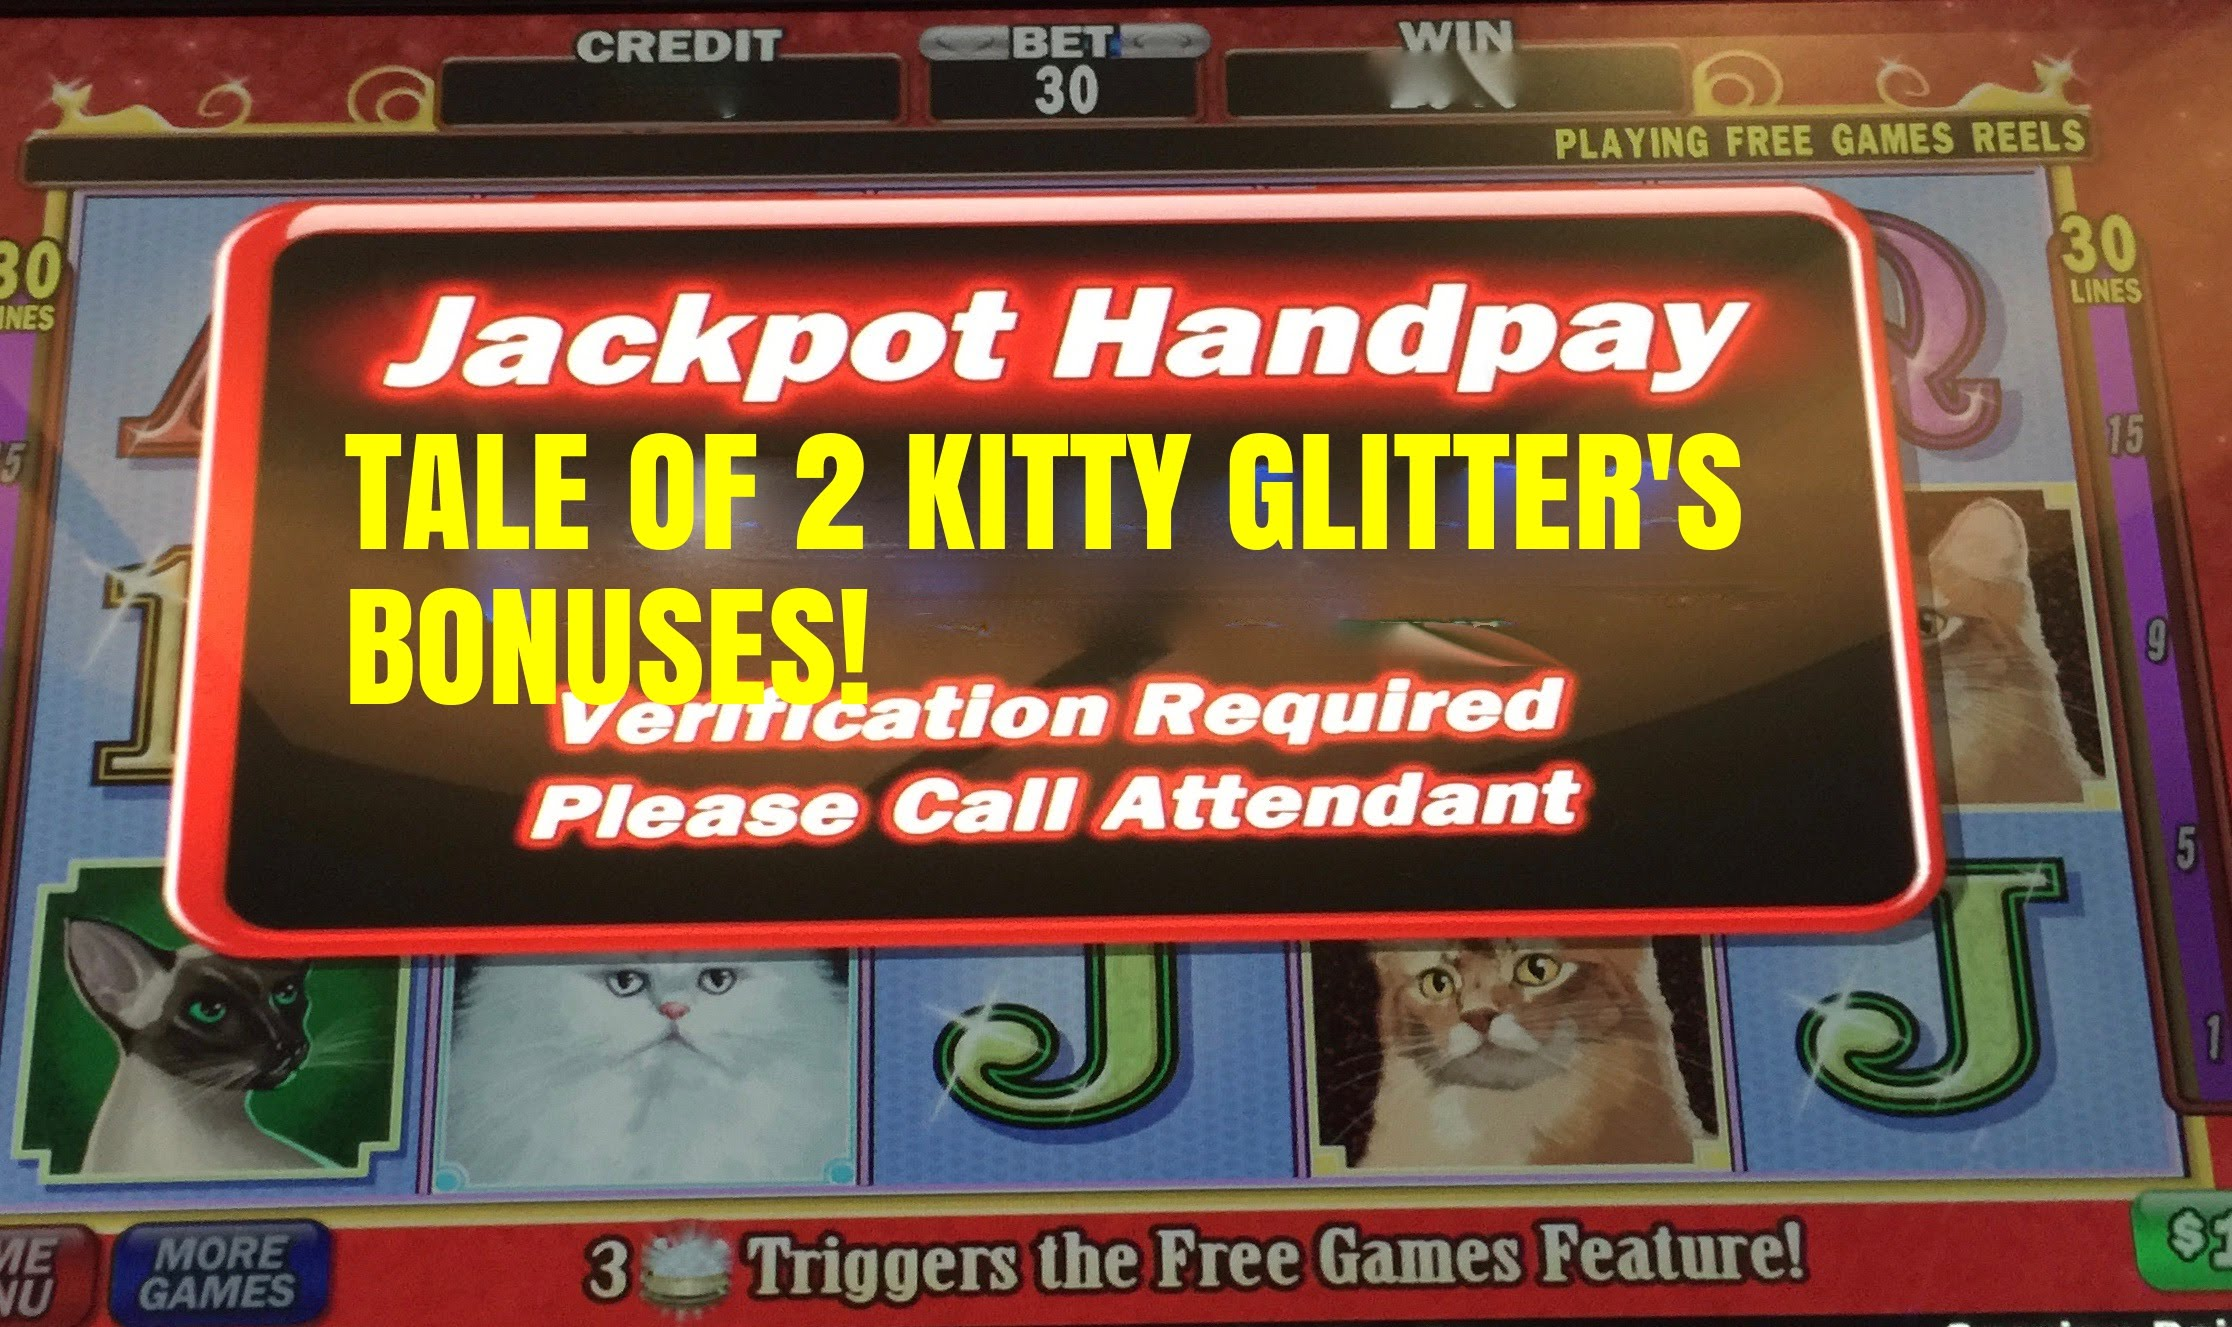 Jackpot Handpay Kitty Glitter Slot Machine Live Play